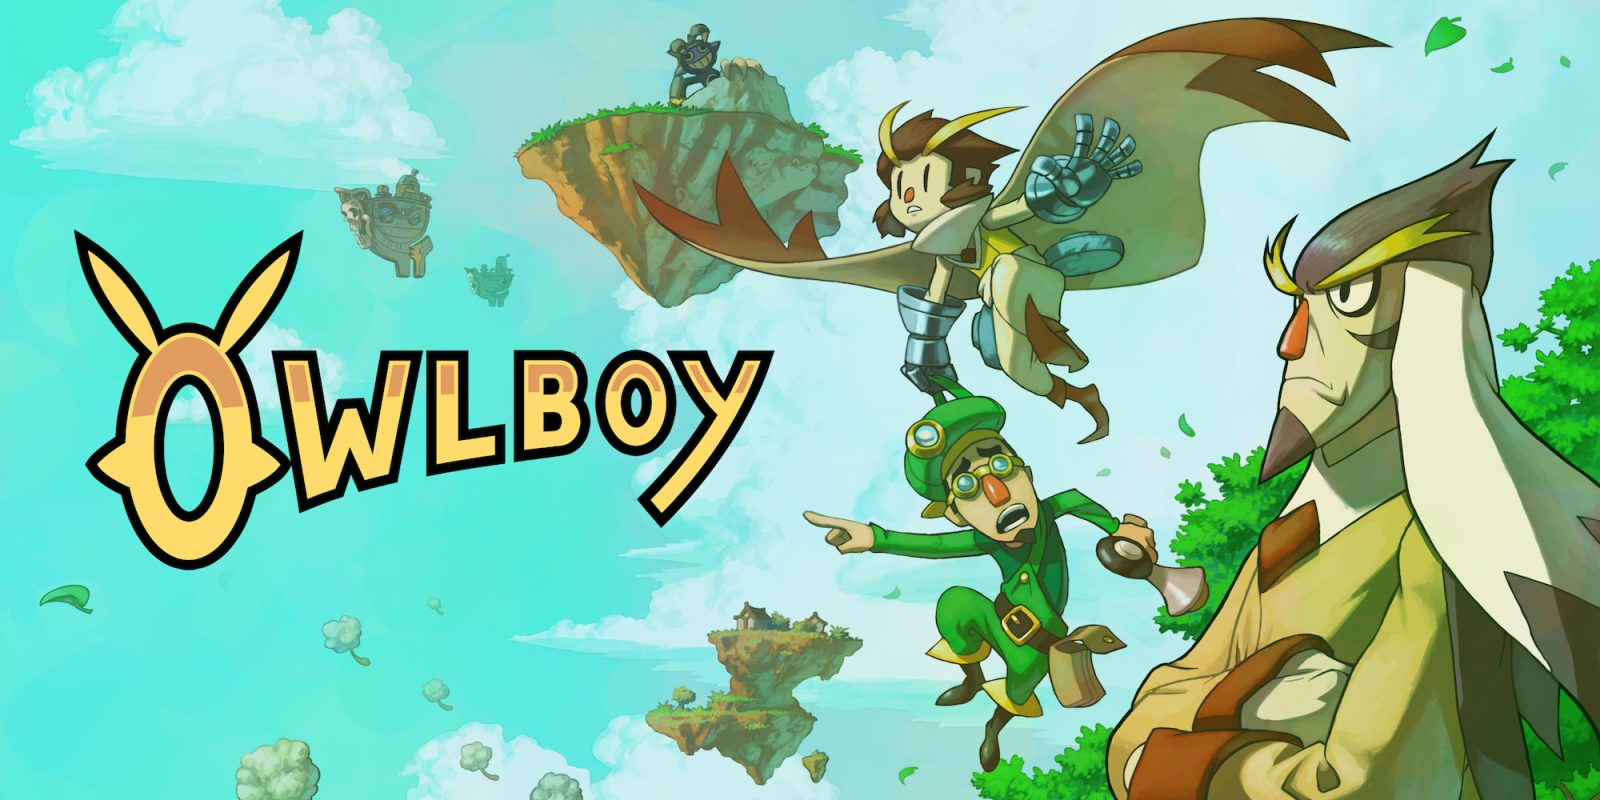 Today's Best Game Deals: Owlboy $15, Super Mario Party $45, more